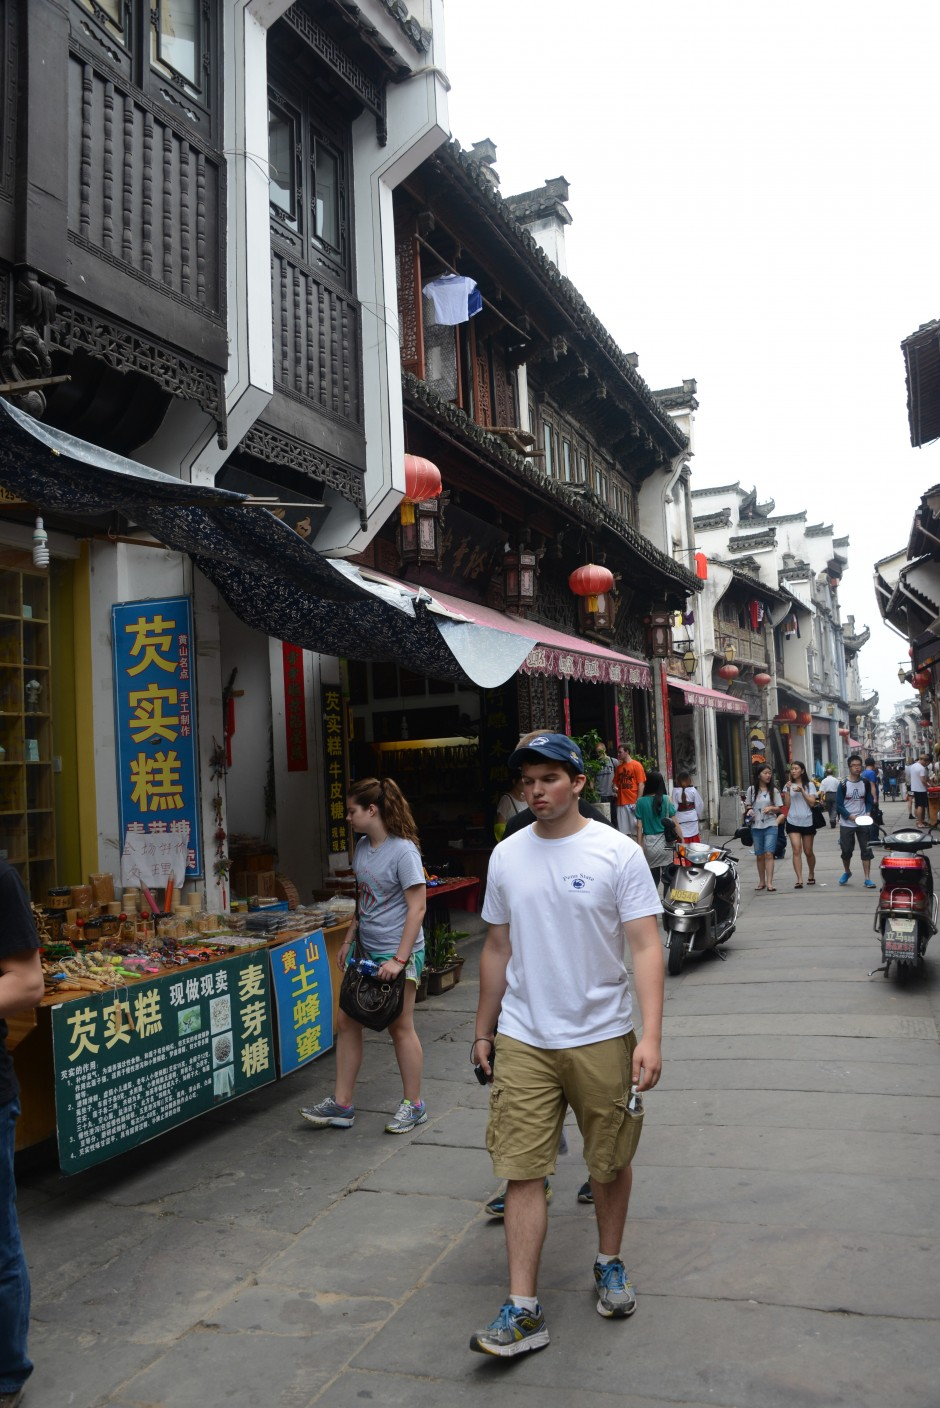 Students shop at Lao Jie, or Old Street, in Tuangxi in Huangshan. Many of the restored houses date back to the Ming Dynasty and now serve as souvenir shops, antique dealers and restaurants. (Photo credit: Curtis Chan)